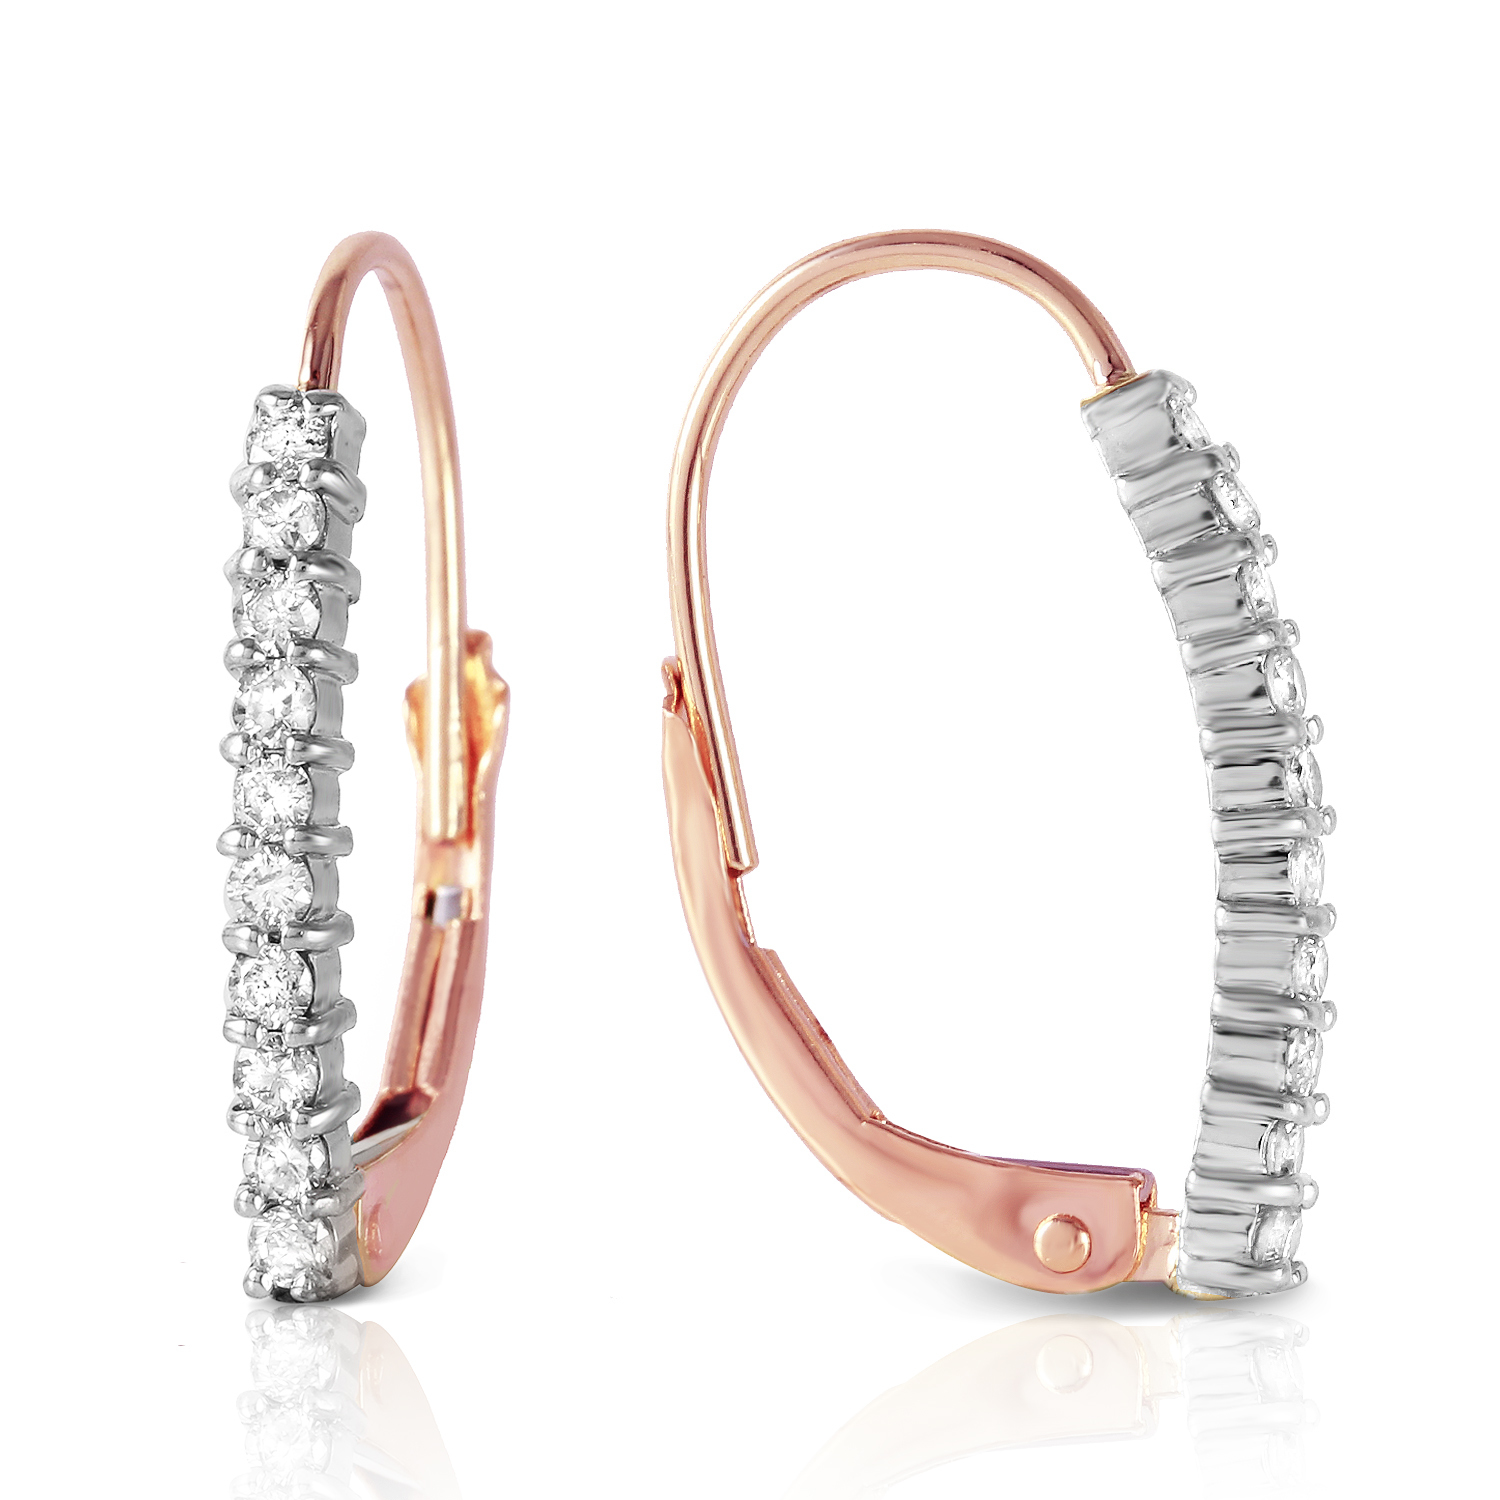 Primary image for 14K Solid Rose Gold Leverback Earrings withNatural Diamonds